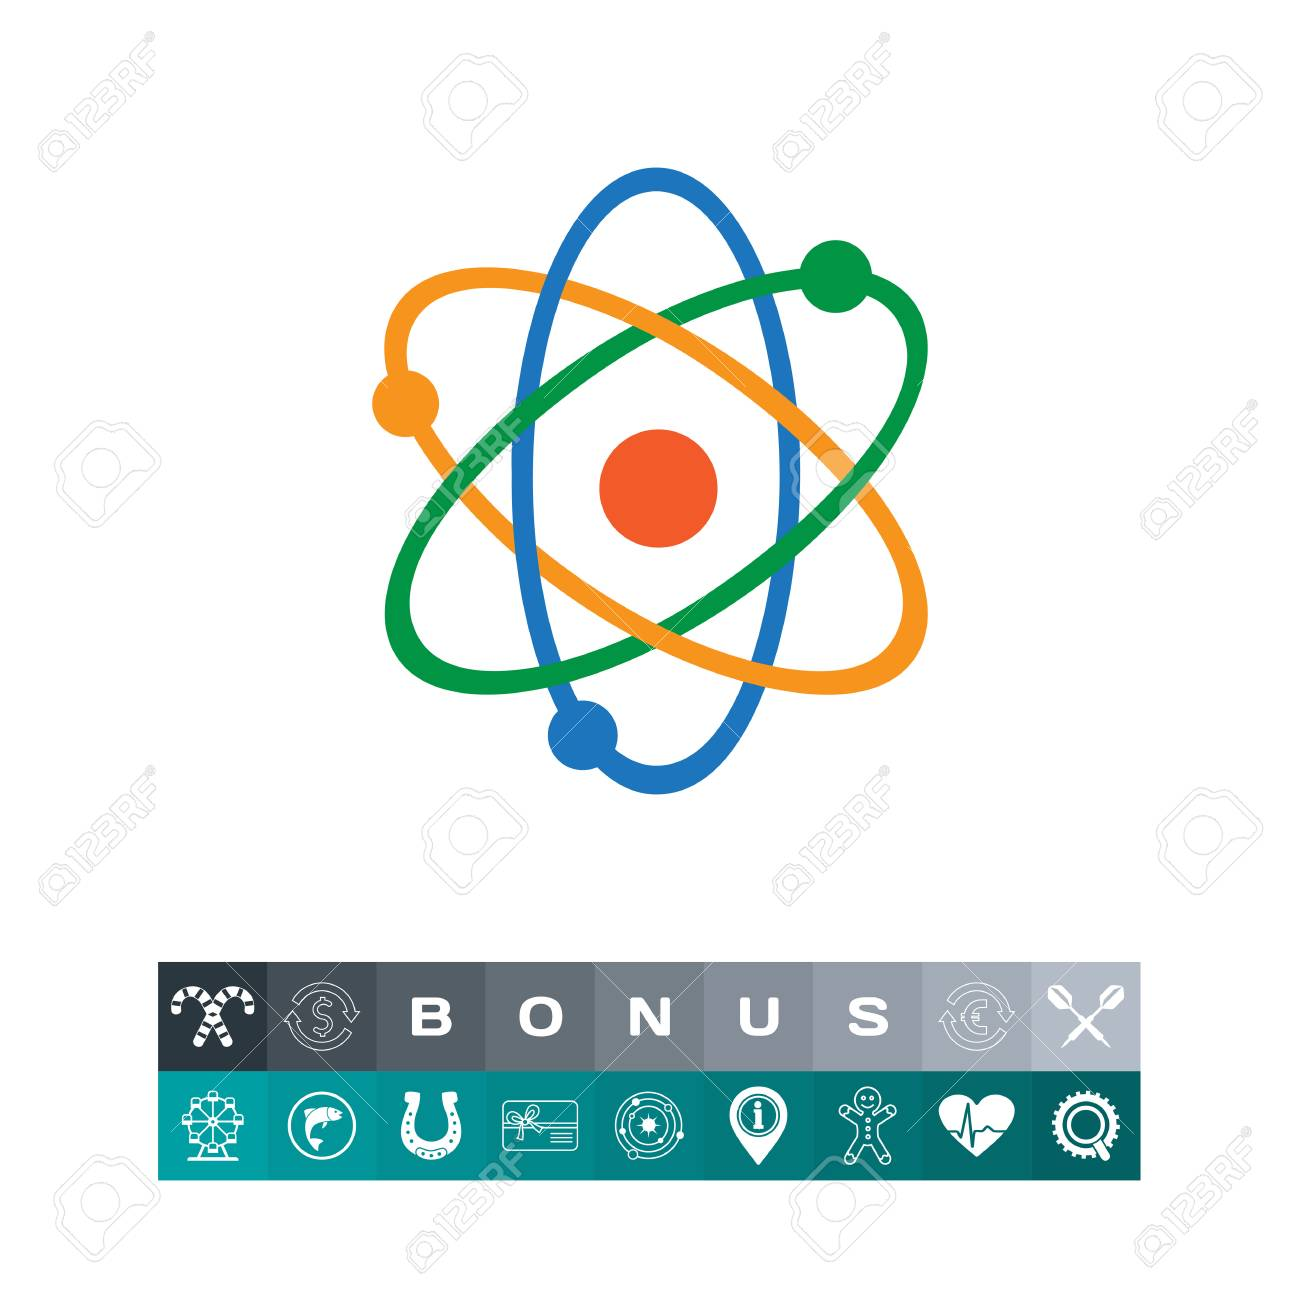 hight resolution of atom model icon in a colorful design illustration stock vector 83443165